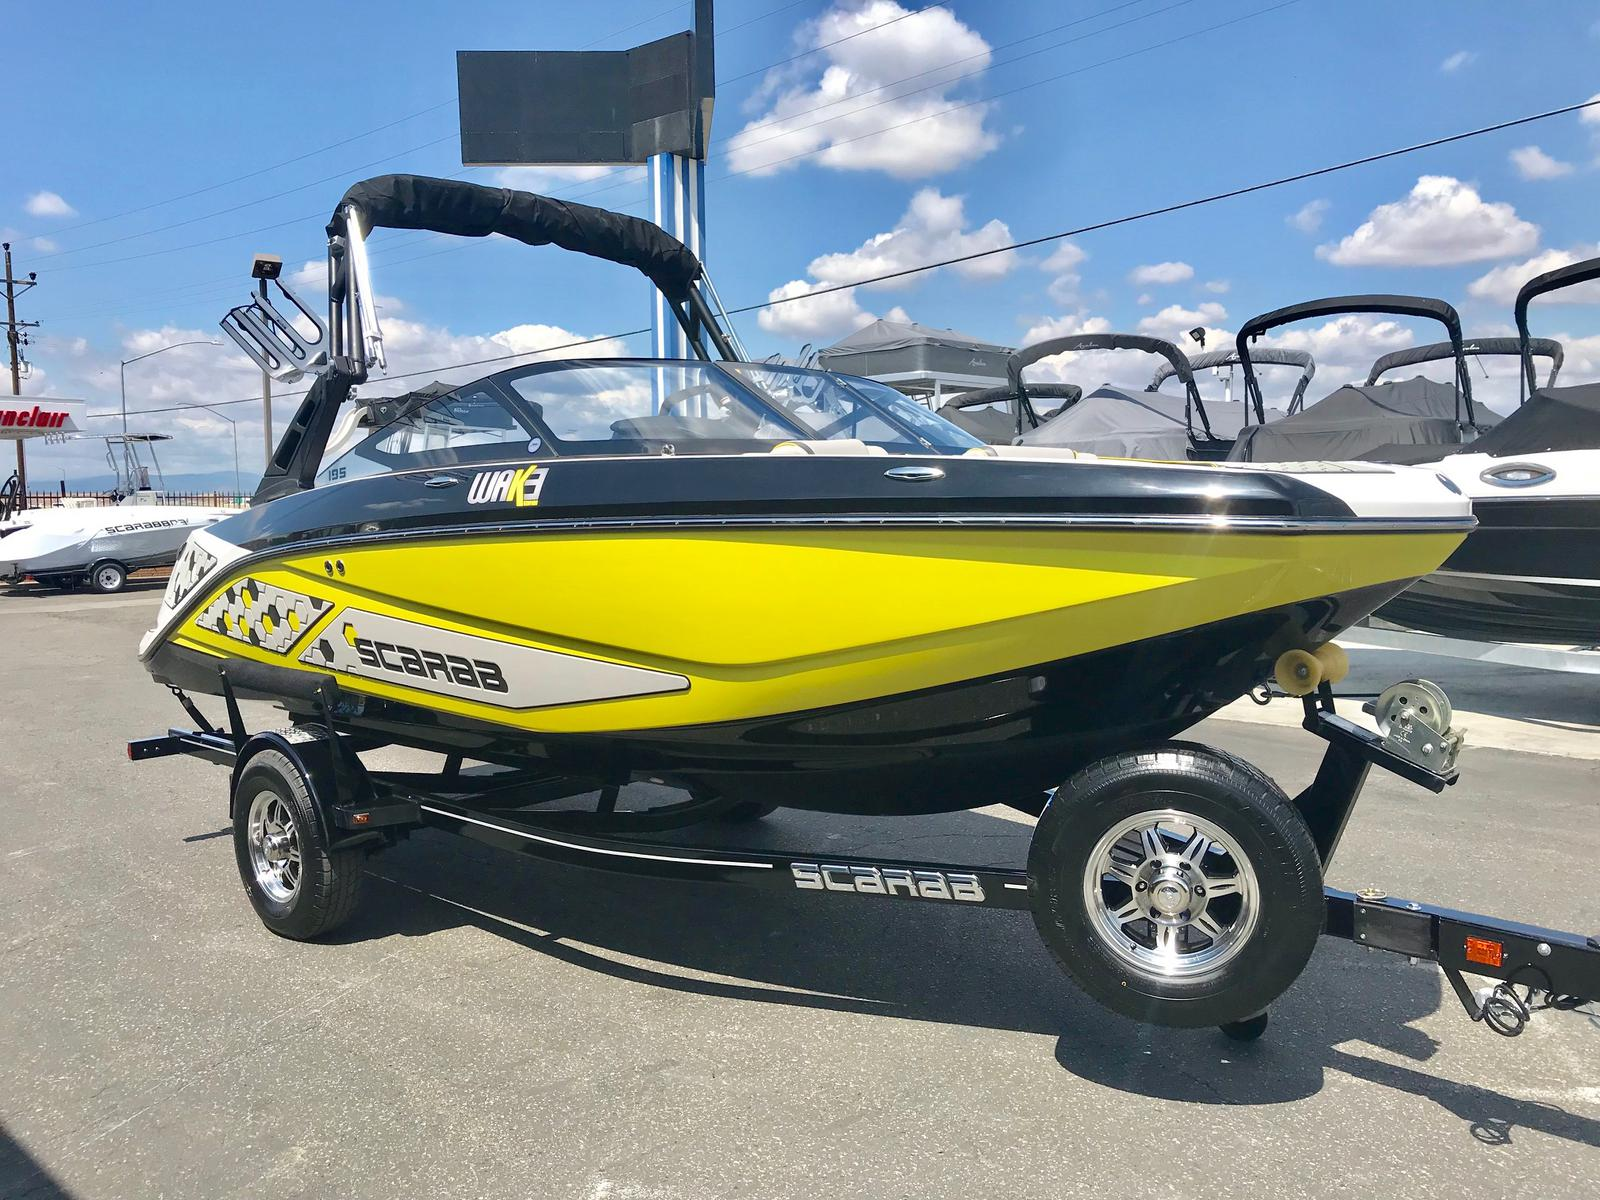 Scarab boats for sale in United States - boats com